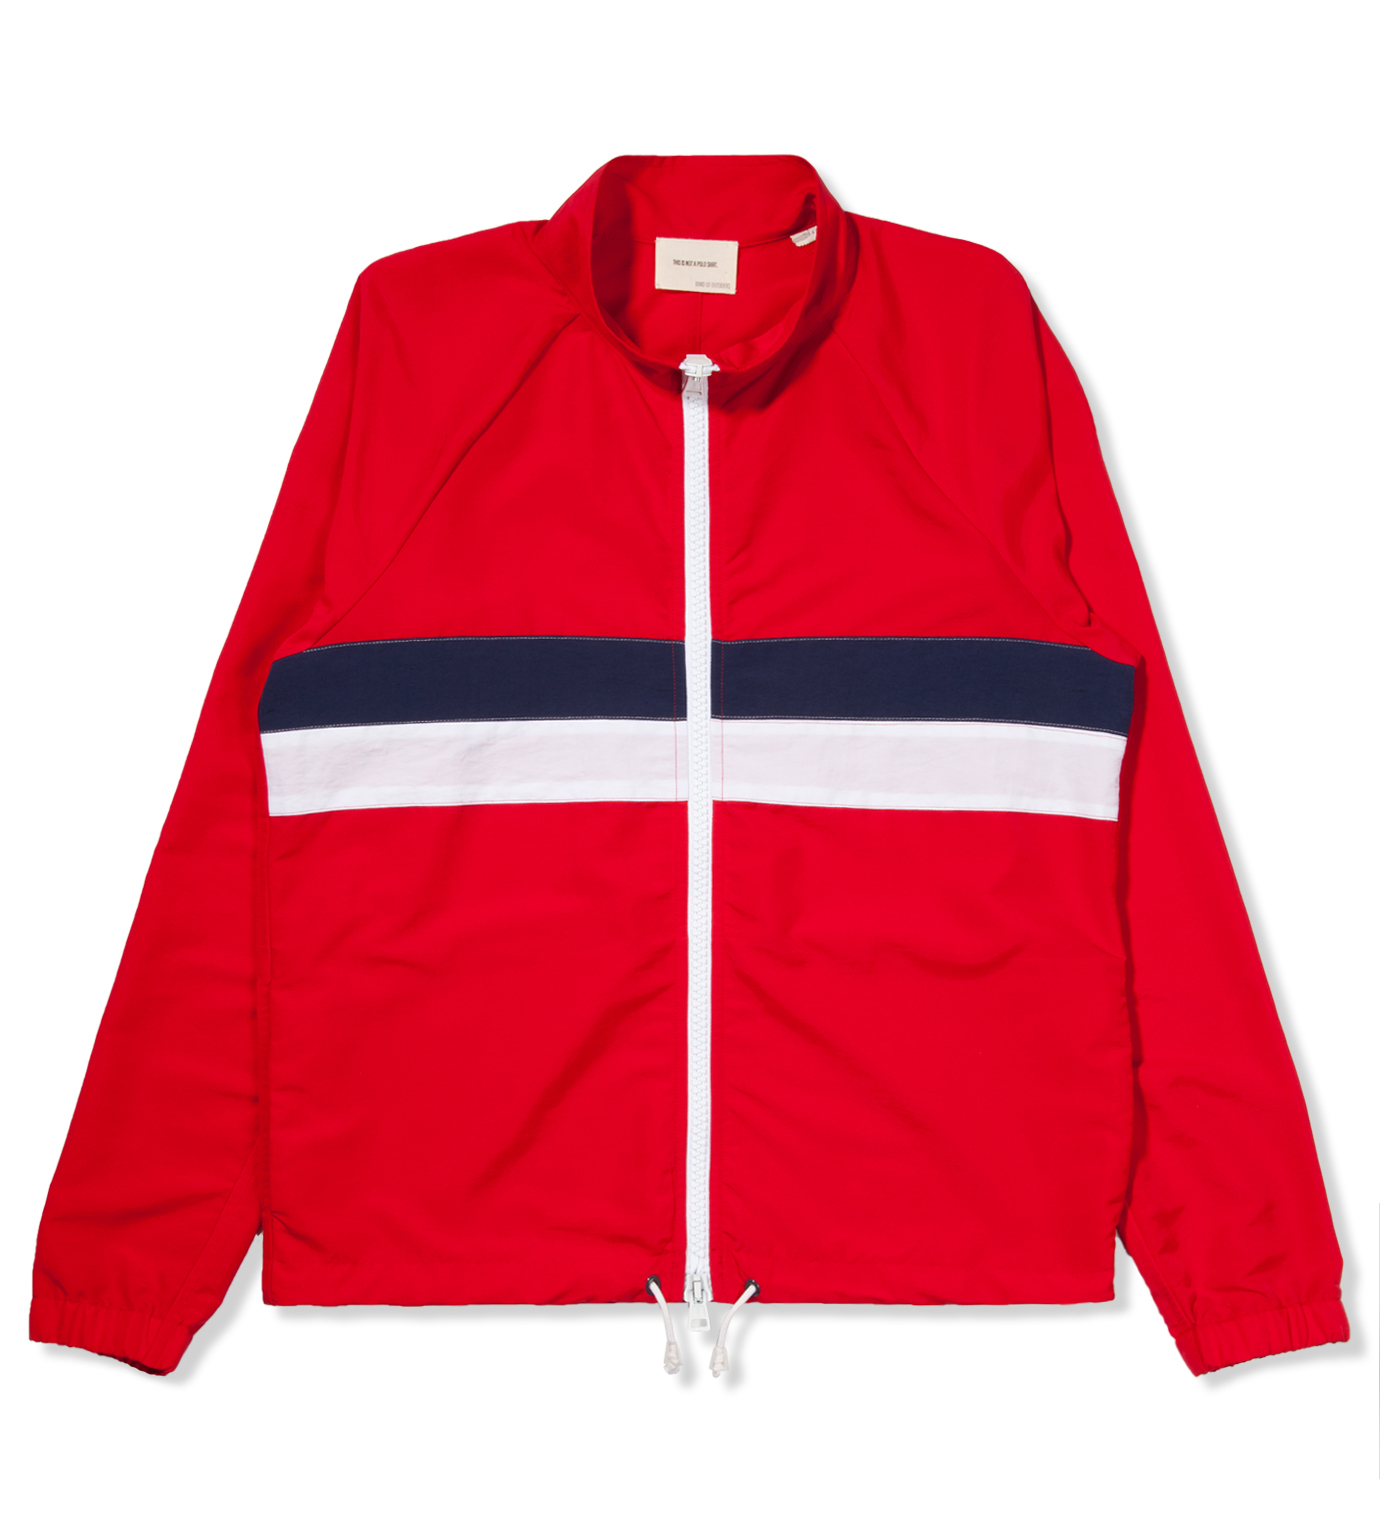 Band of Outsiders Red Windbreaker